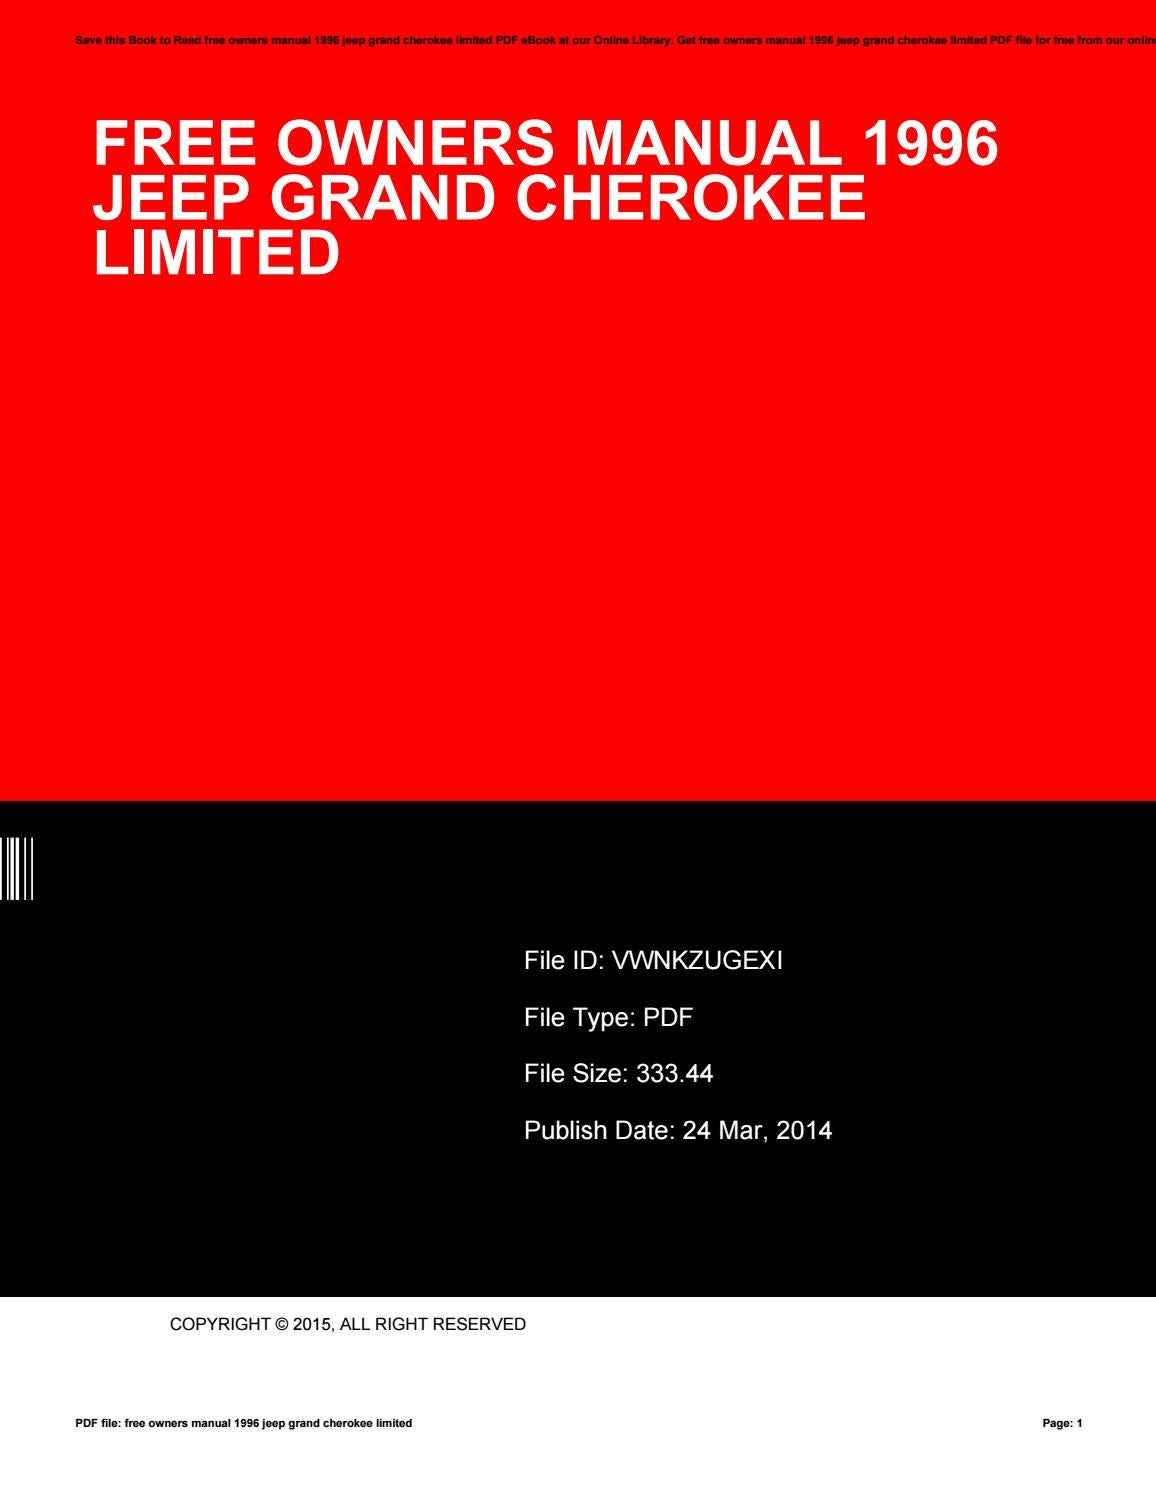 Free owners manual 1996 jeep grand cherokee limited by CynthiaLewis2154 -  issuu